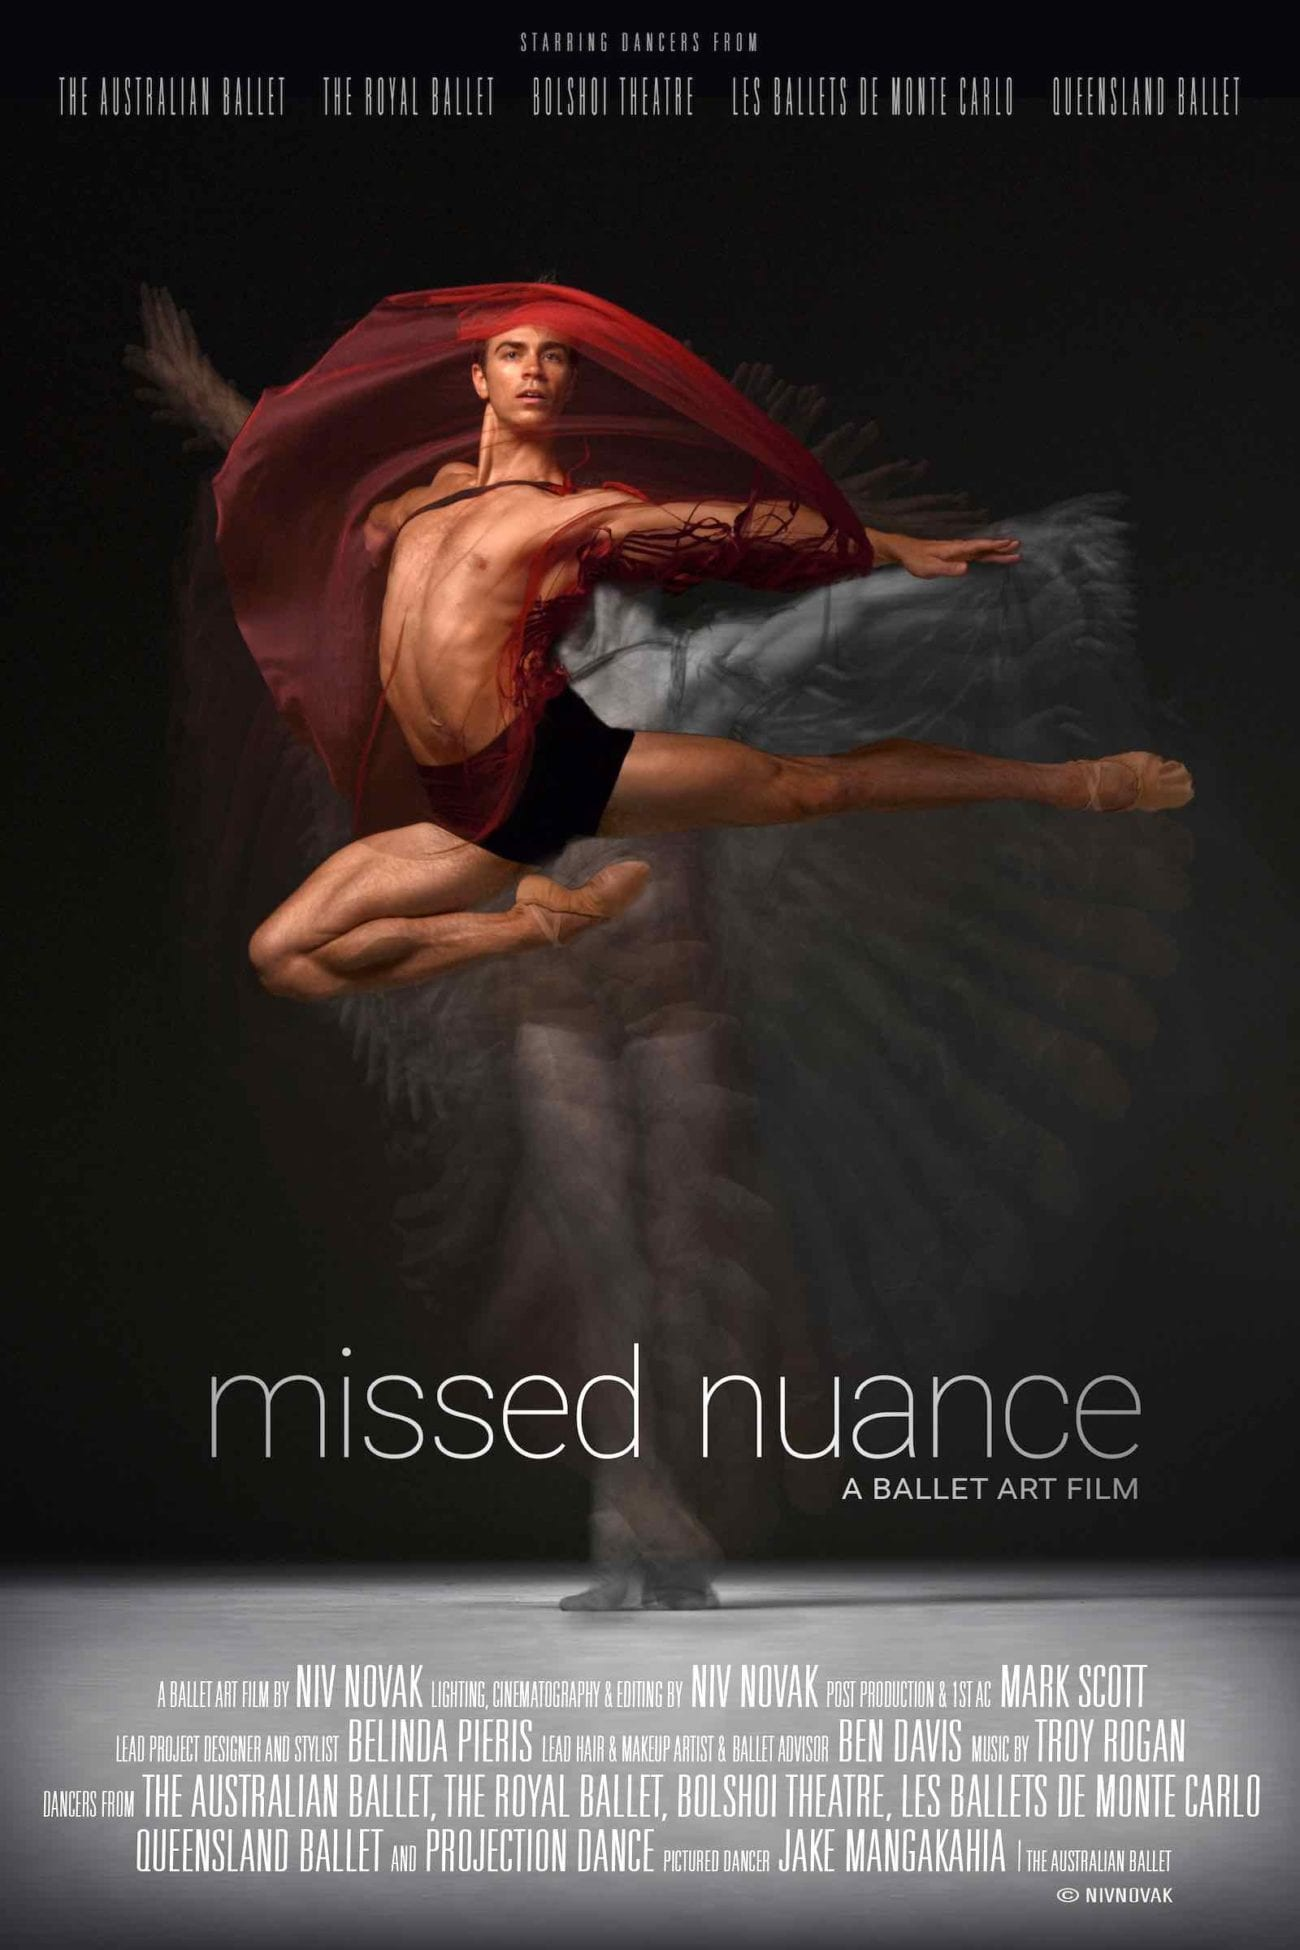 Niv Novak's 'Missed Nuance' is a breathtaking study of movement and fabric, and the role fashion plays in elevating the artistry of dance.